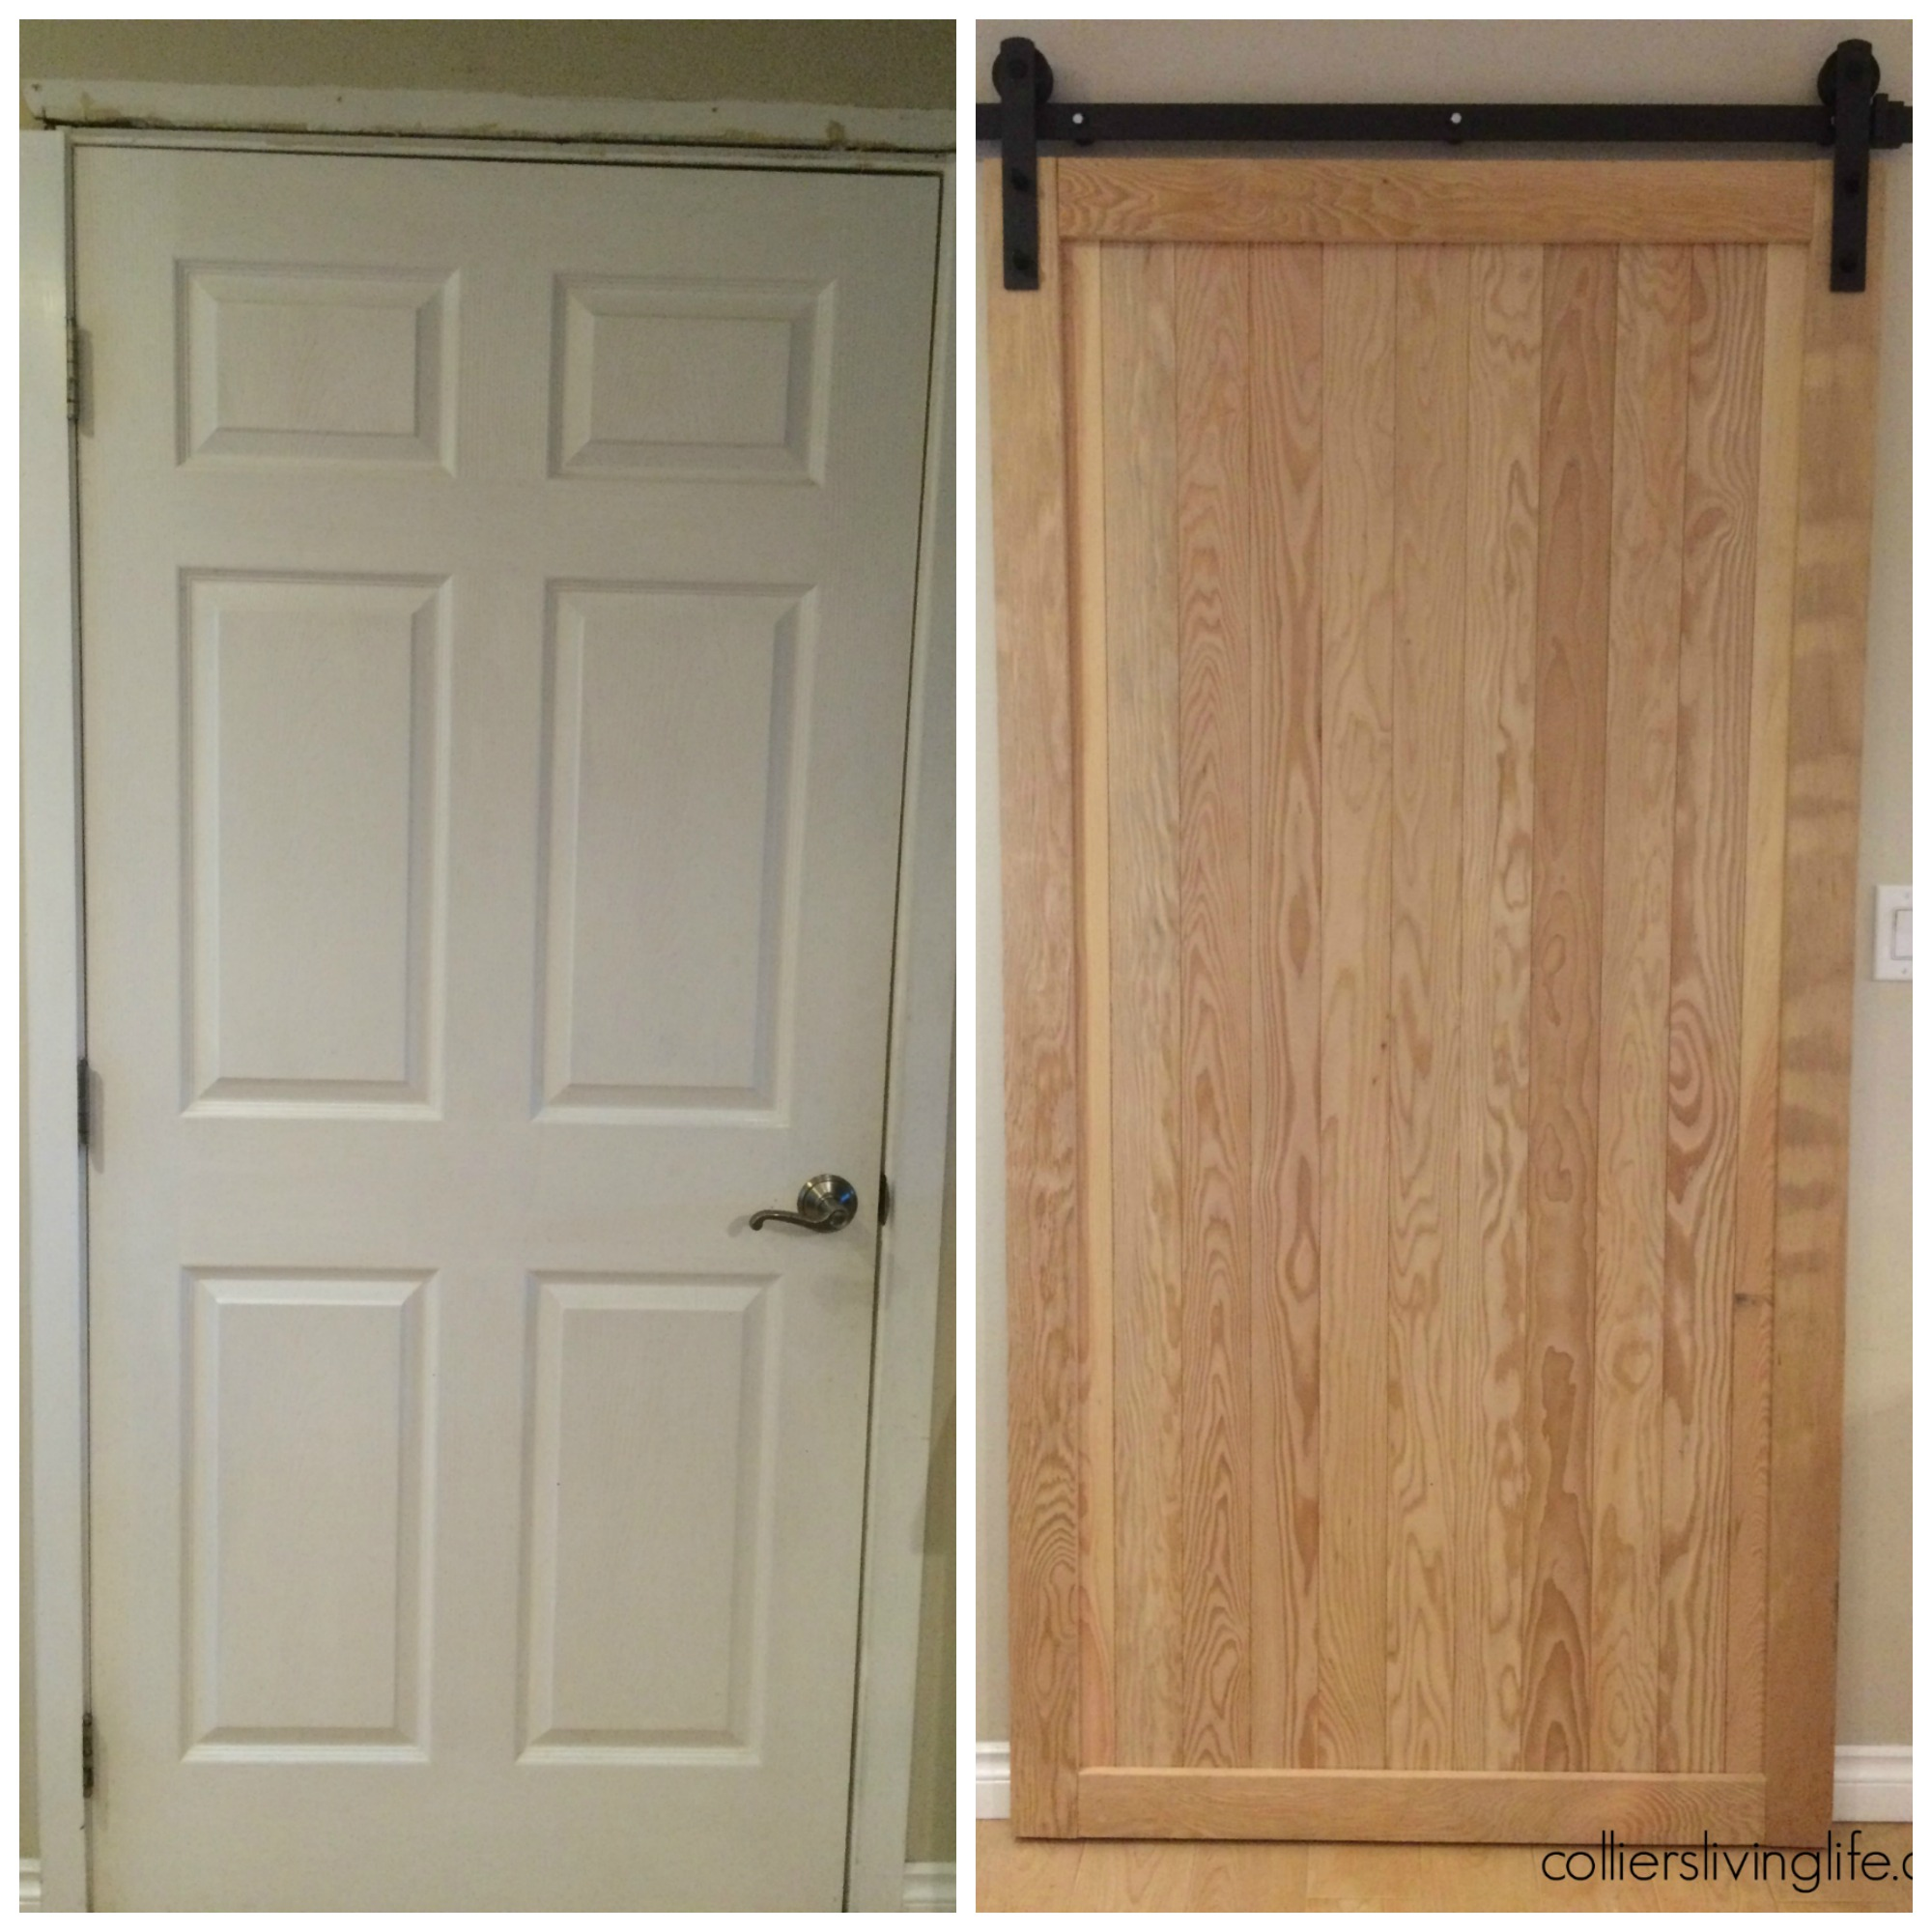 Diy Sliding Barn Door Easy To Build With Easy To Follow Directions